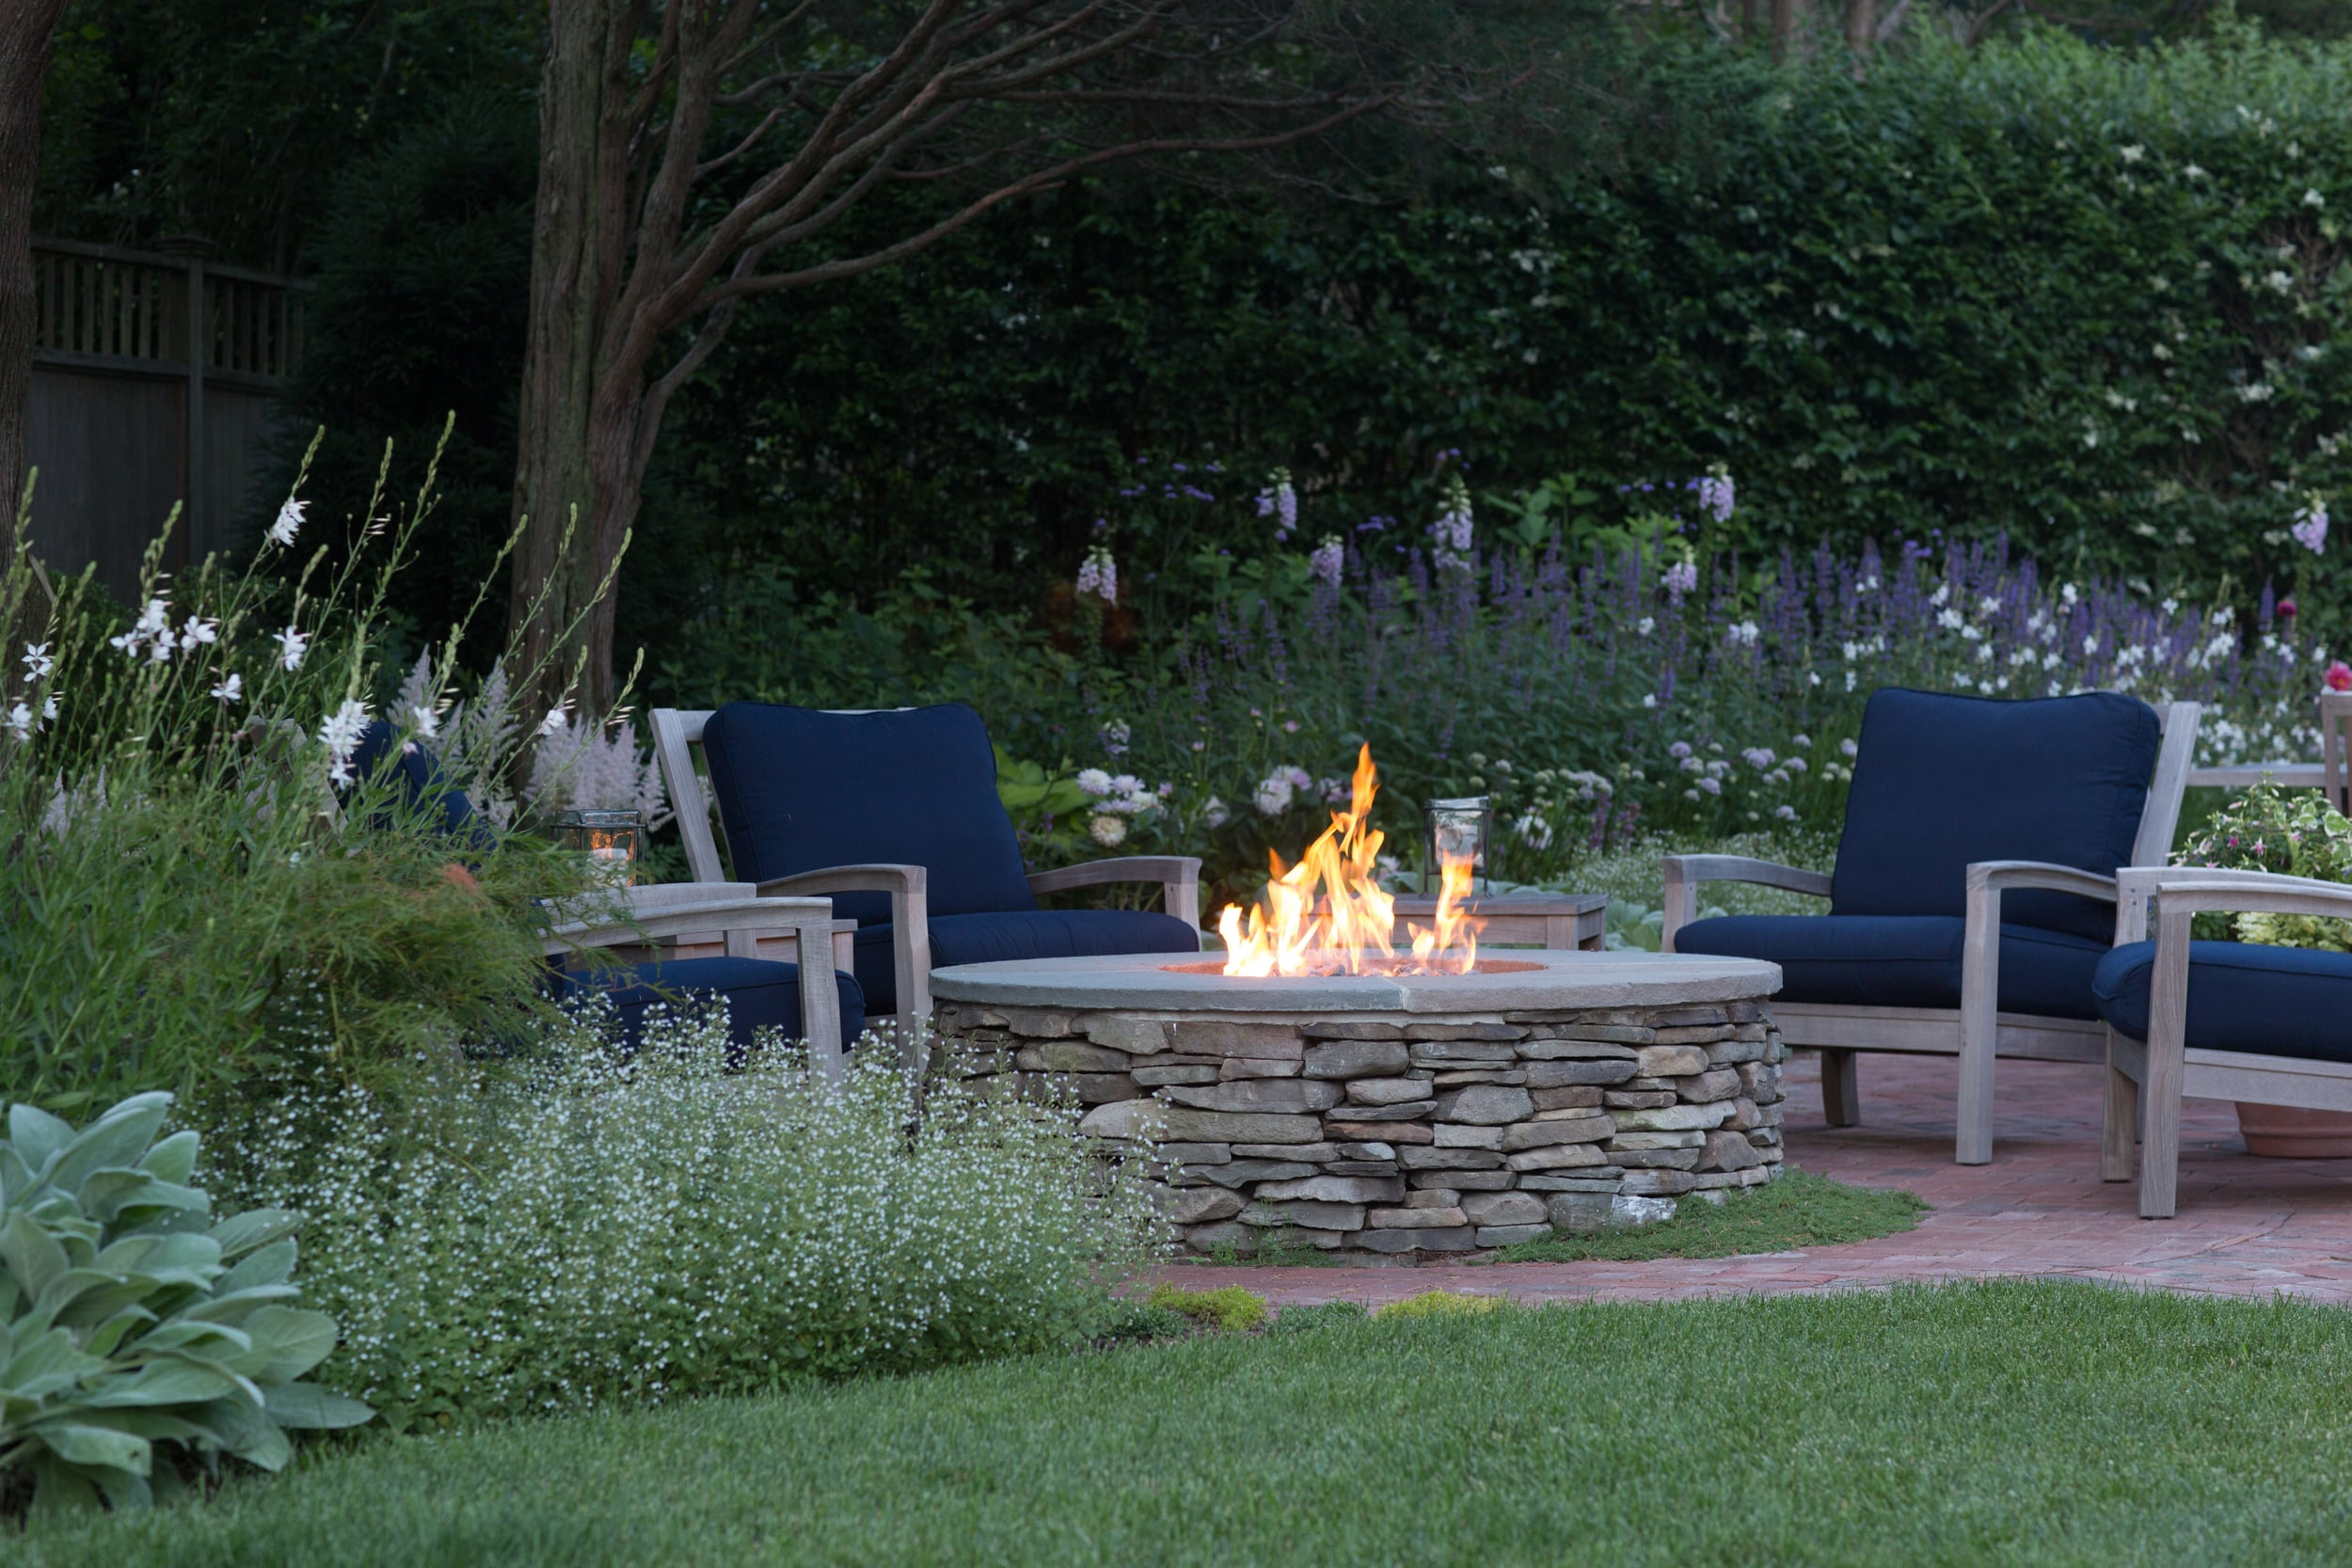 Garden Design Company Image Magnificent The Garden Design Company Design Inspiration